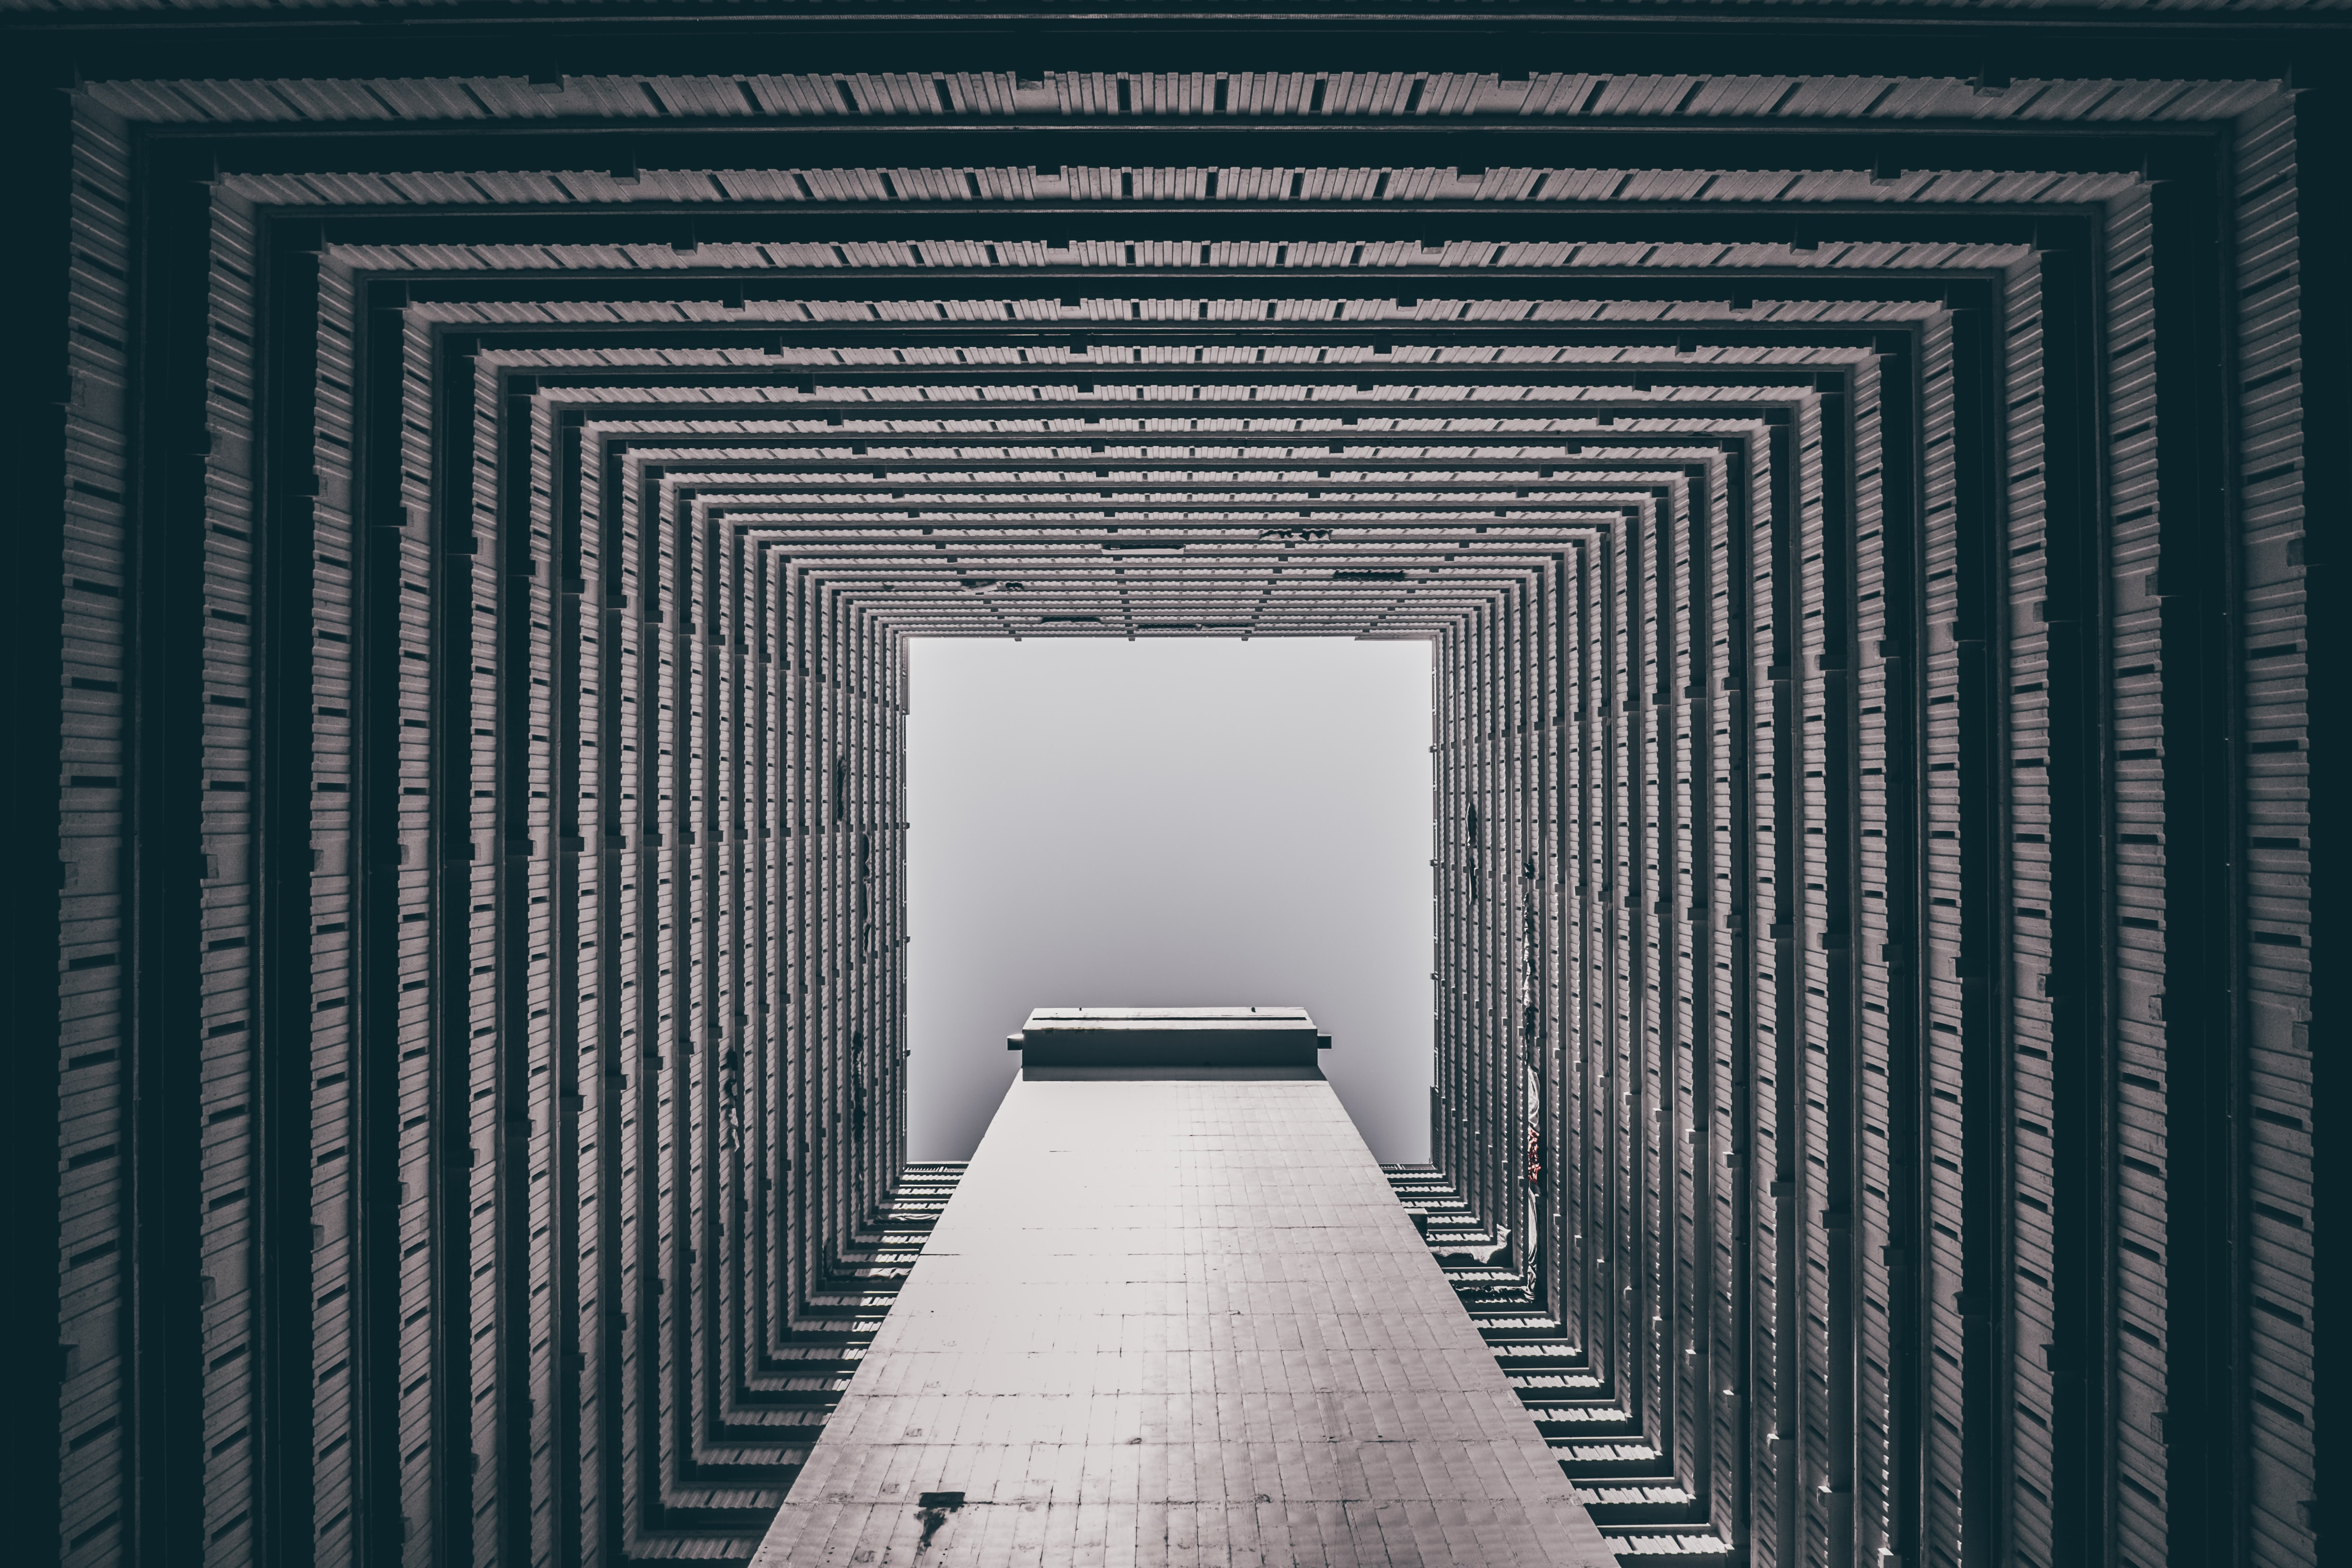 A hypnotizing image of a building hall in Hong Kong with trippy square patterns